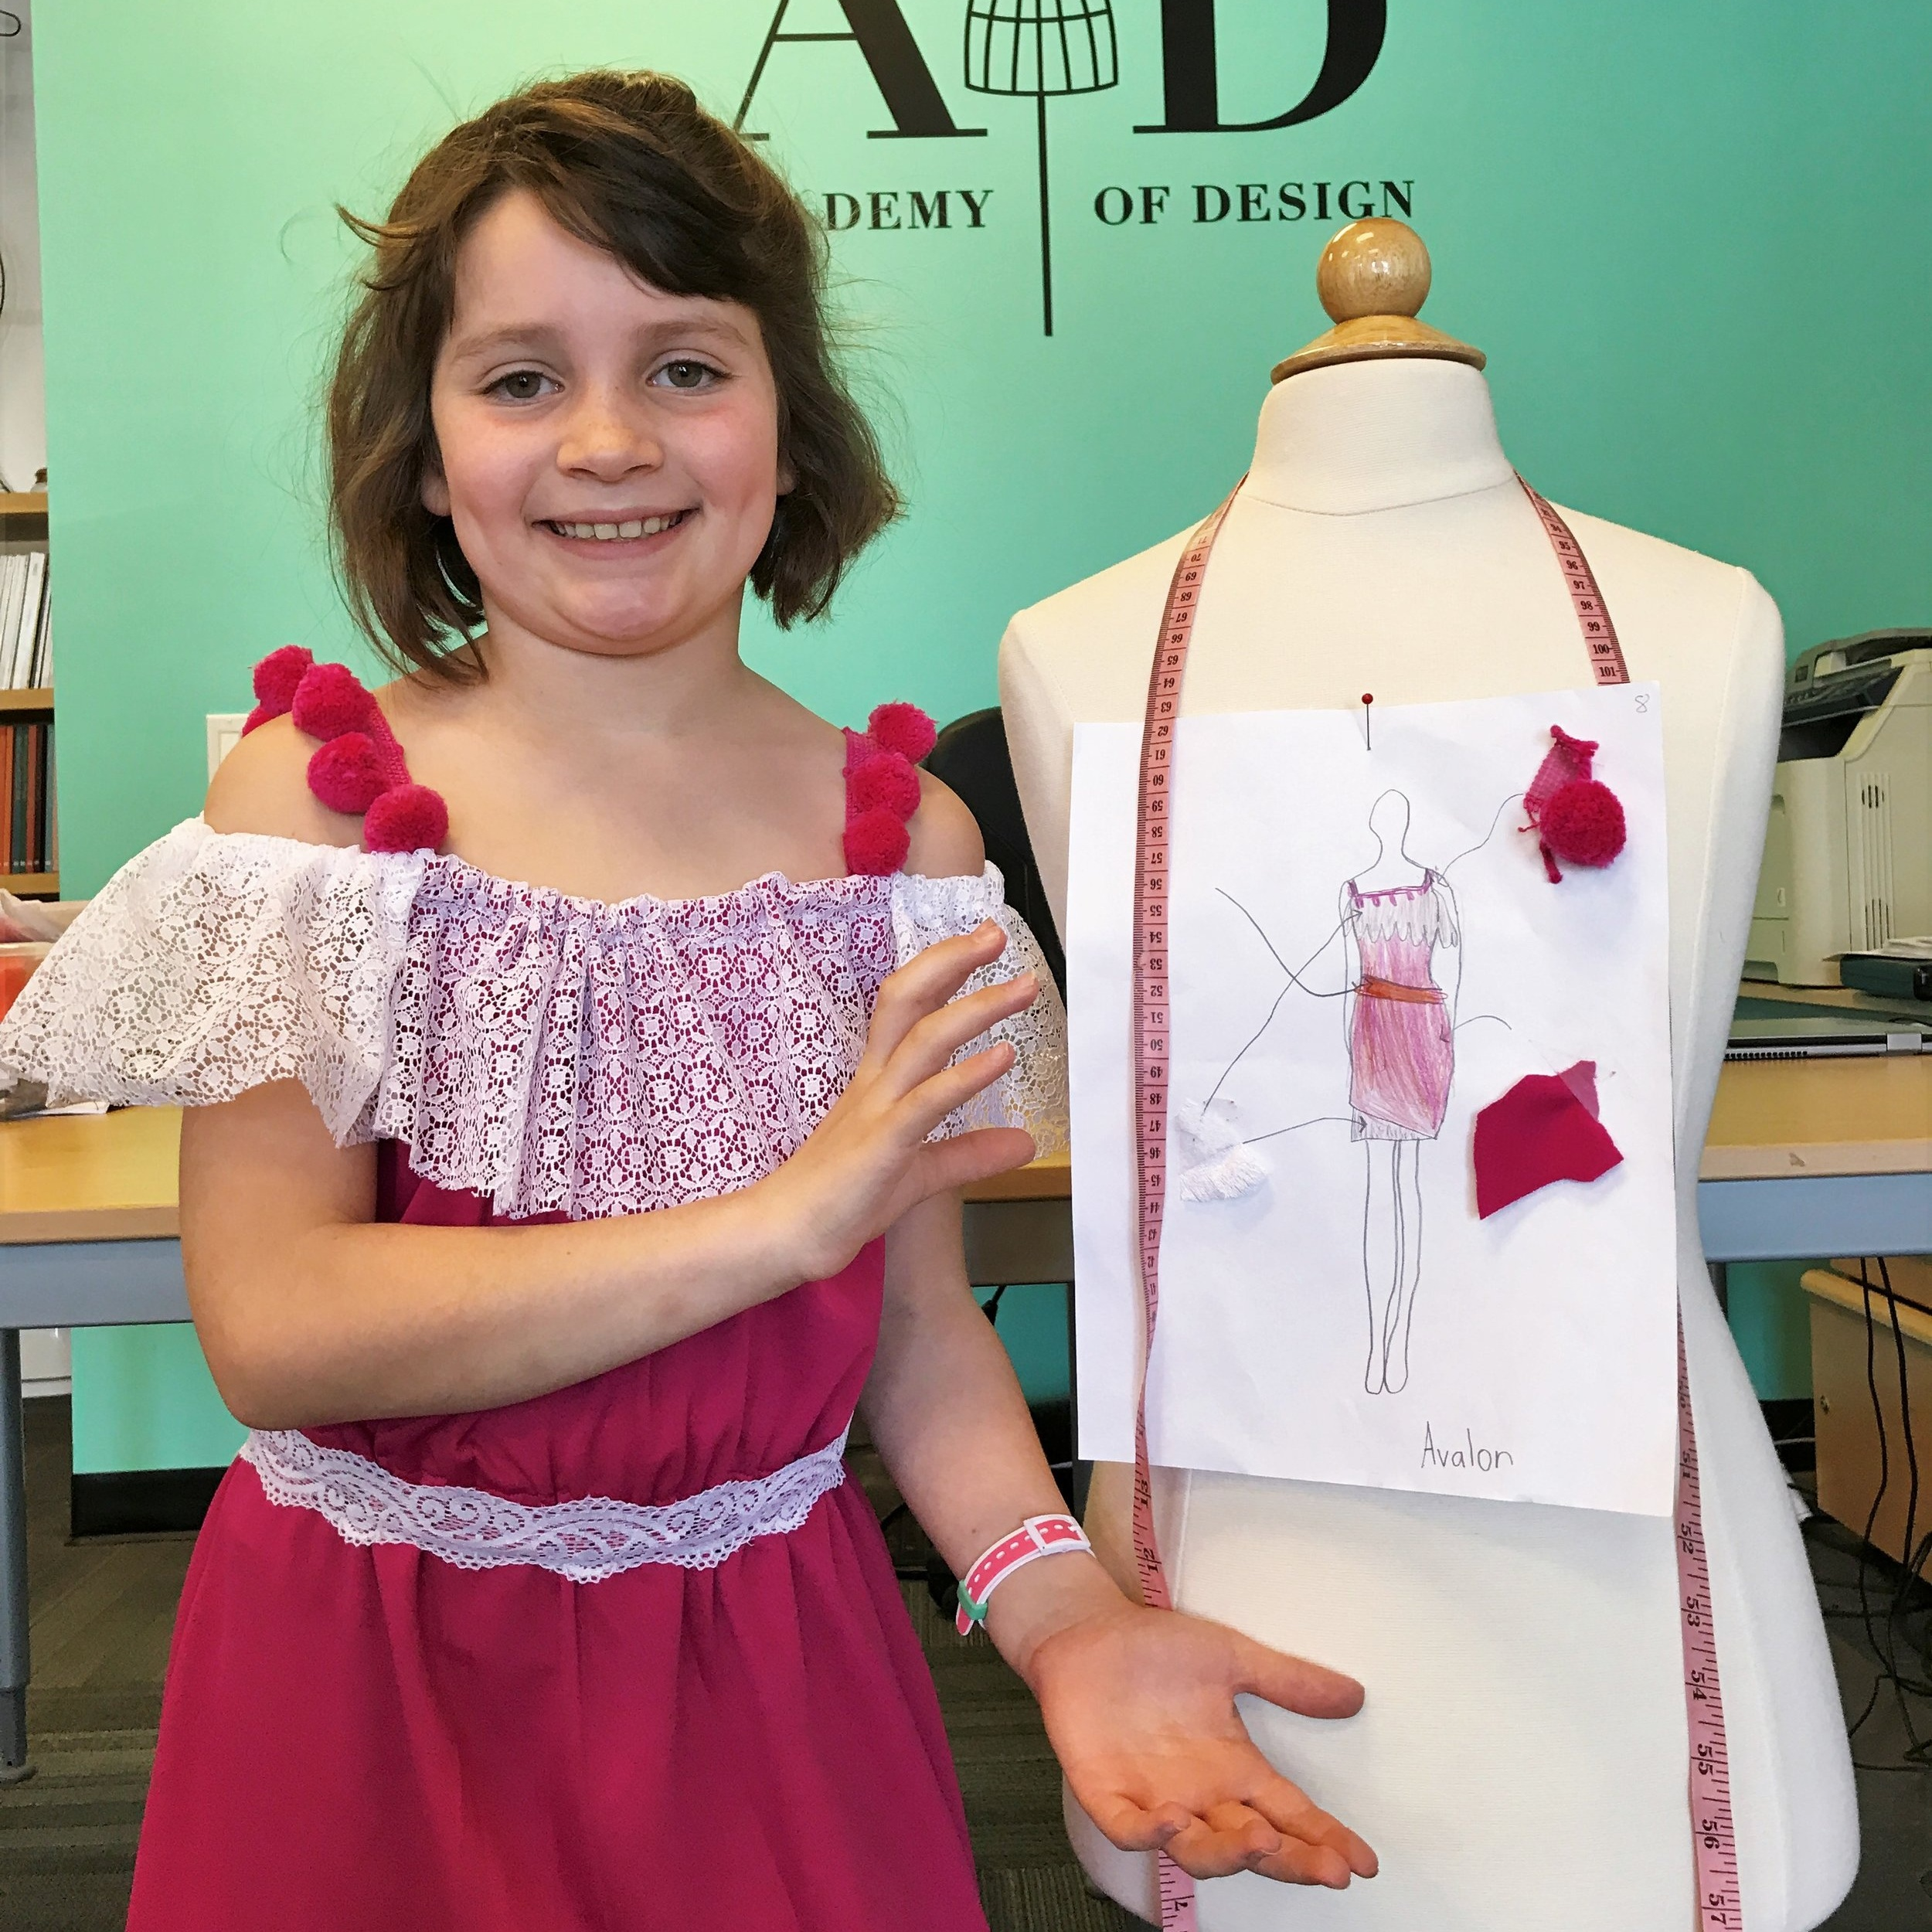 "Learning is ""hands-on"" - Each designer chooses his/her unique project. Students learn to sketch, learn about textiles, learn to hand sew and operate sewing machines.Our fun bright fashion studio is equipped with dress forms for experimenting, spacious work tables, and computerized sewing machines."